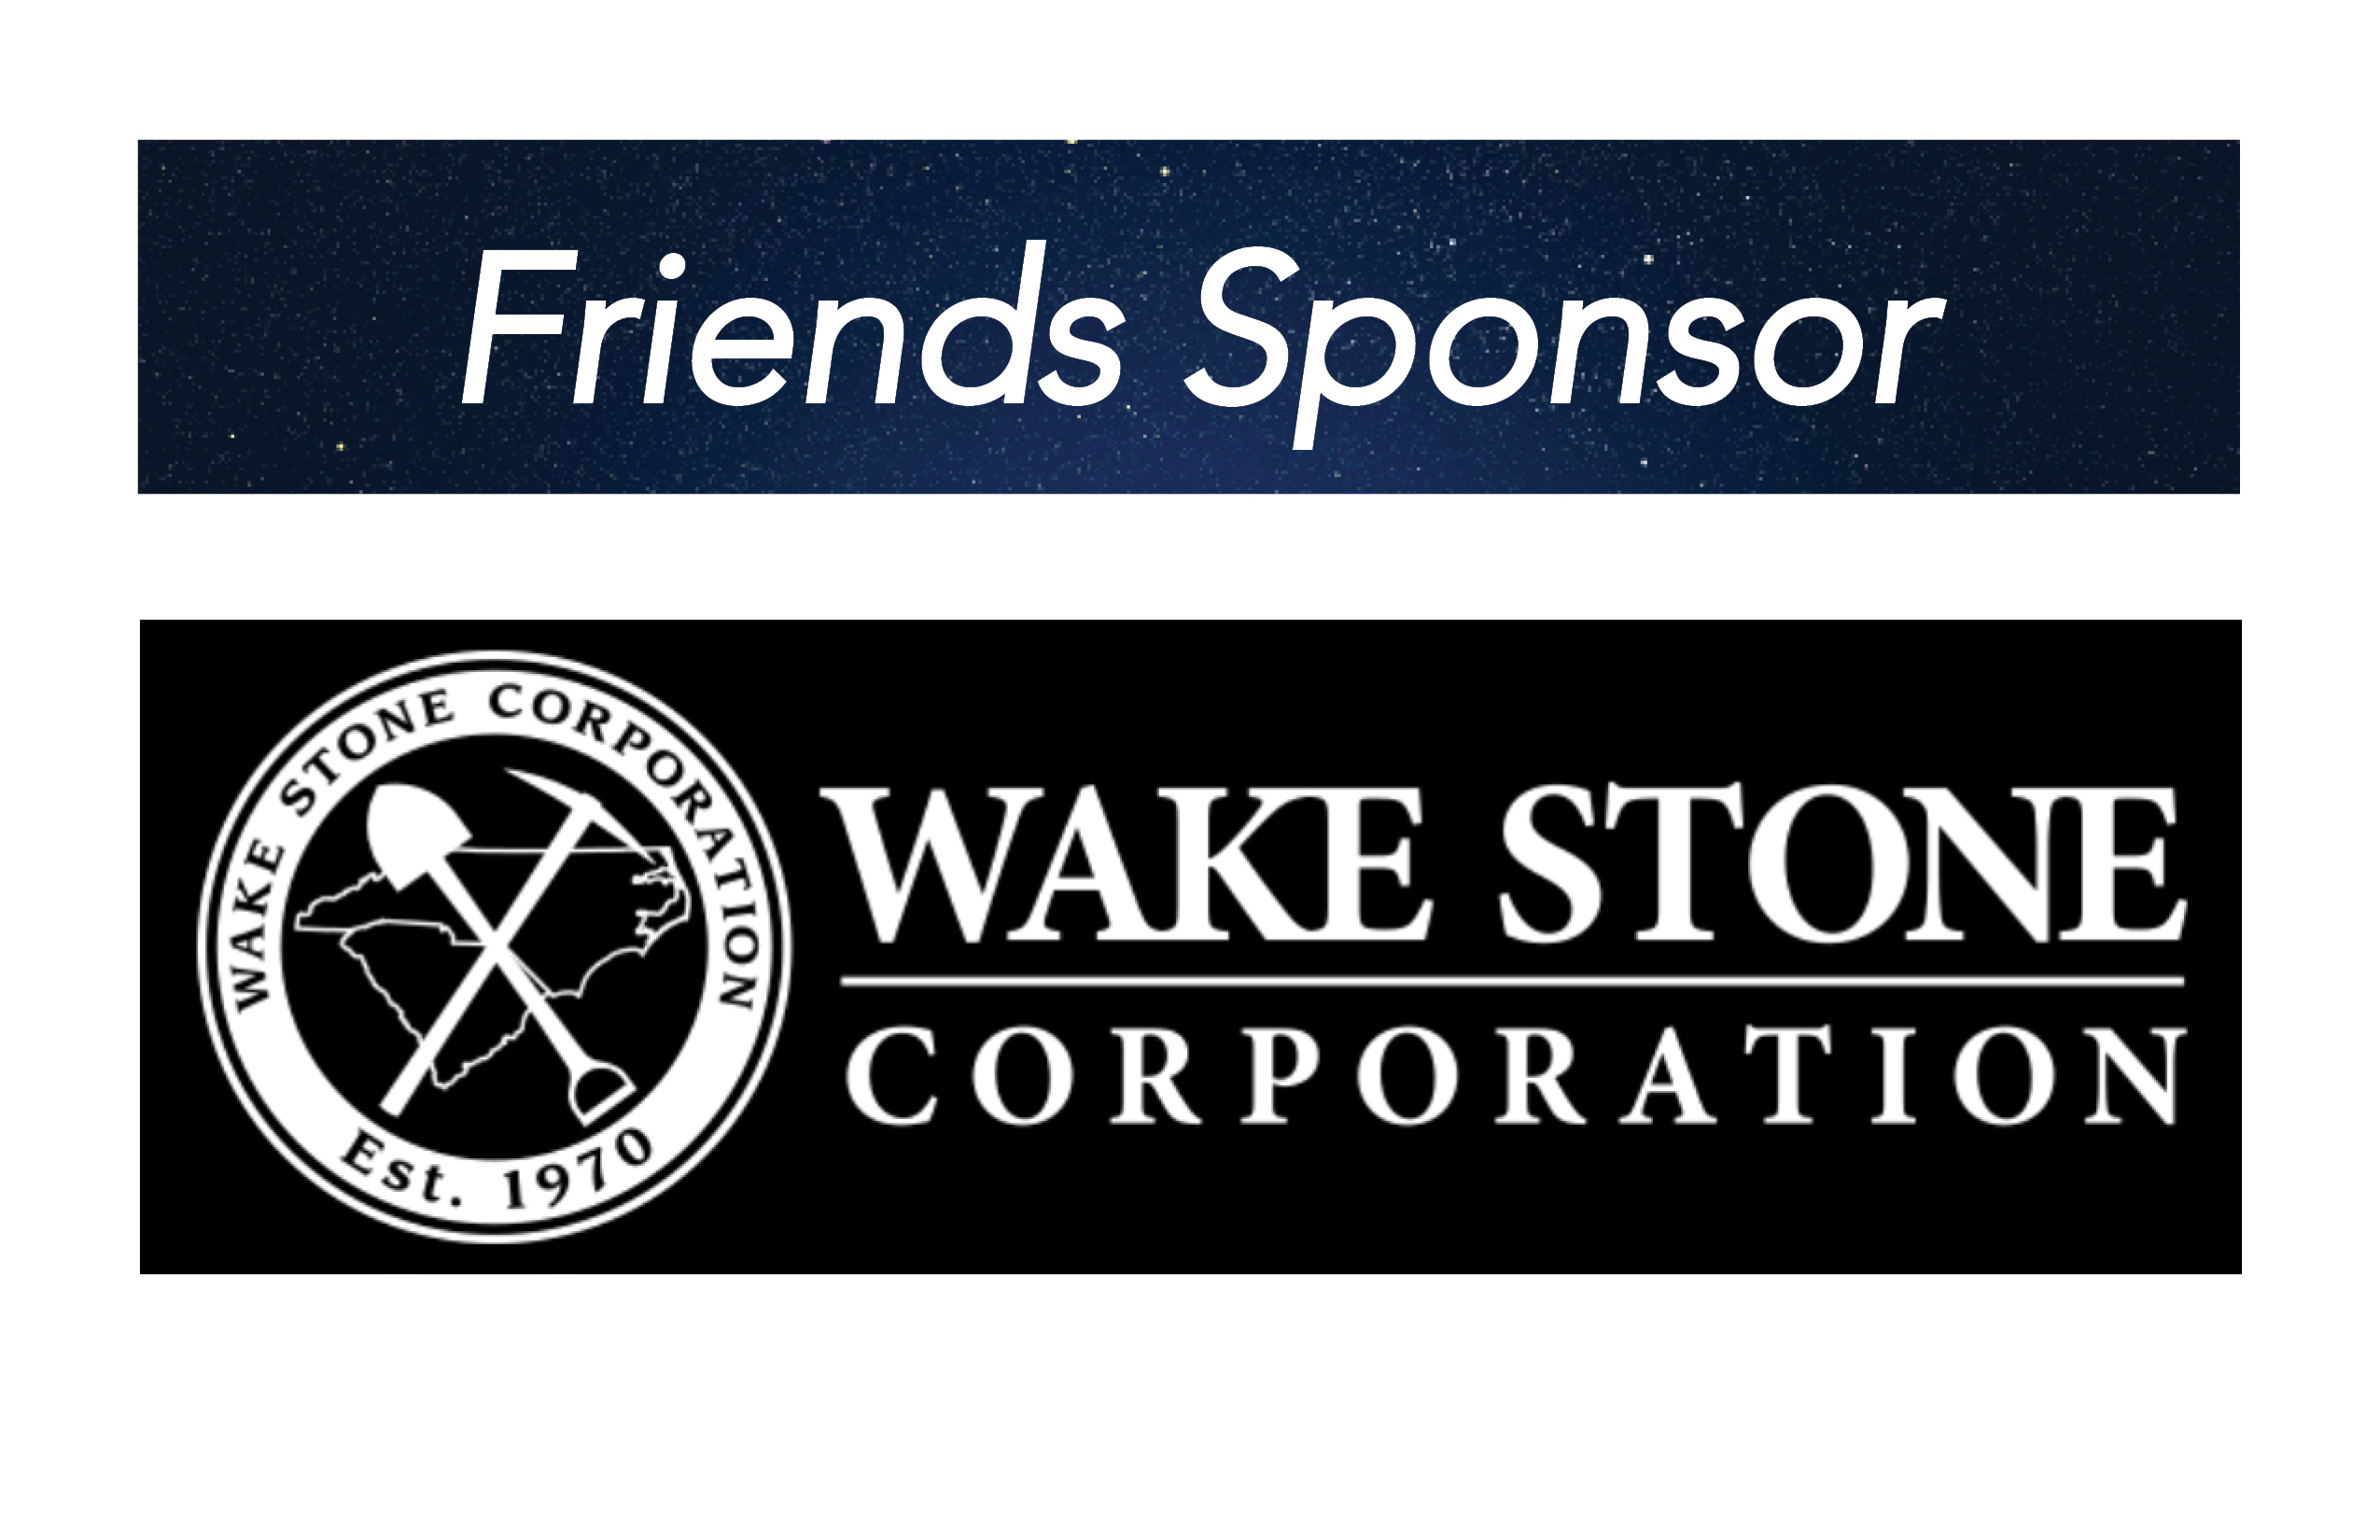 Wake Stone, Friends Sponsor